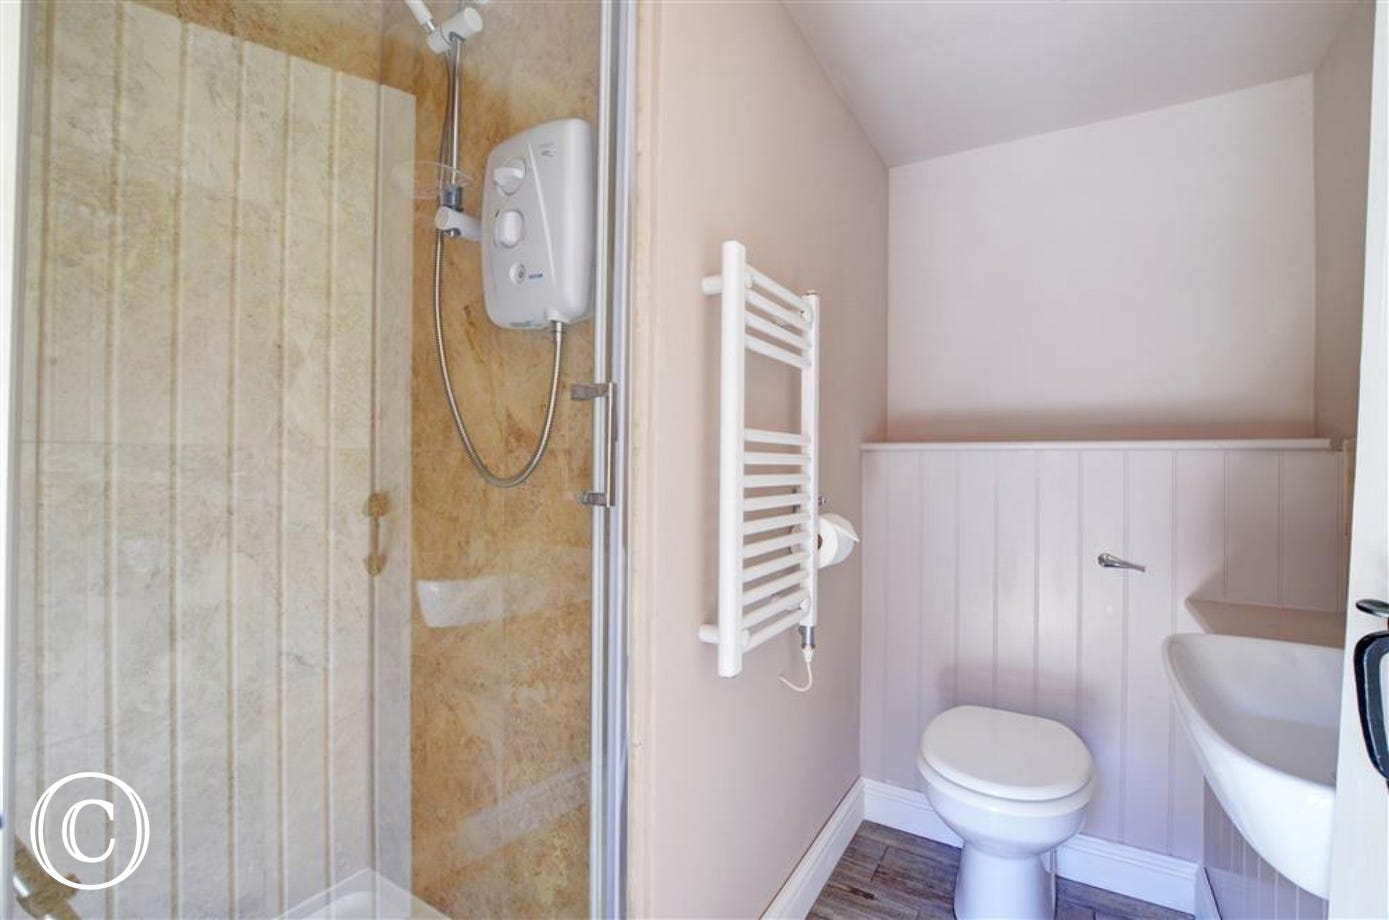 The shower room has a shower cubicle, WC and basin